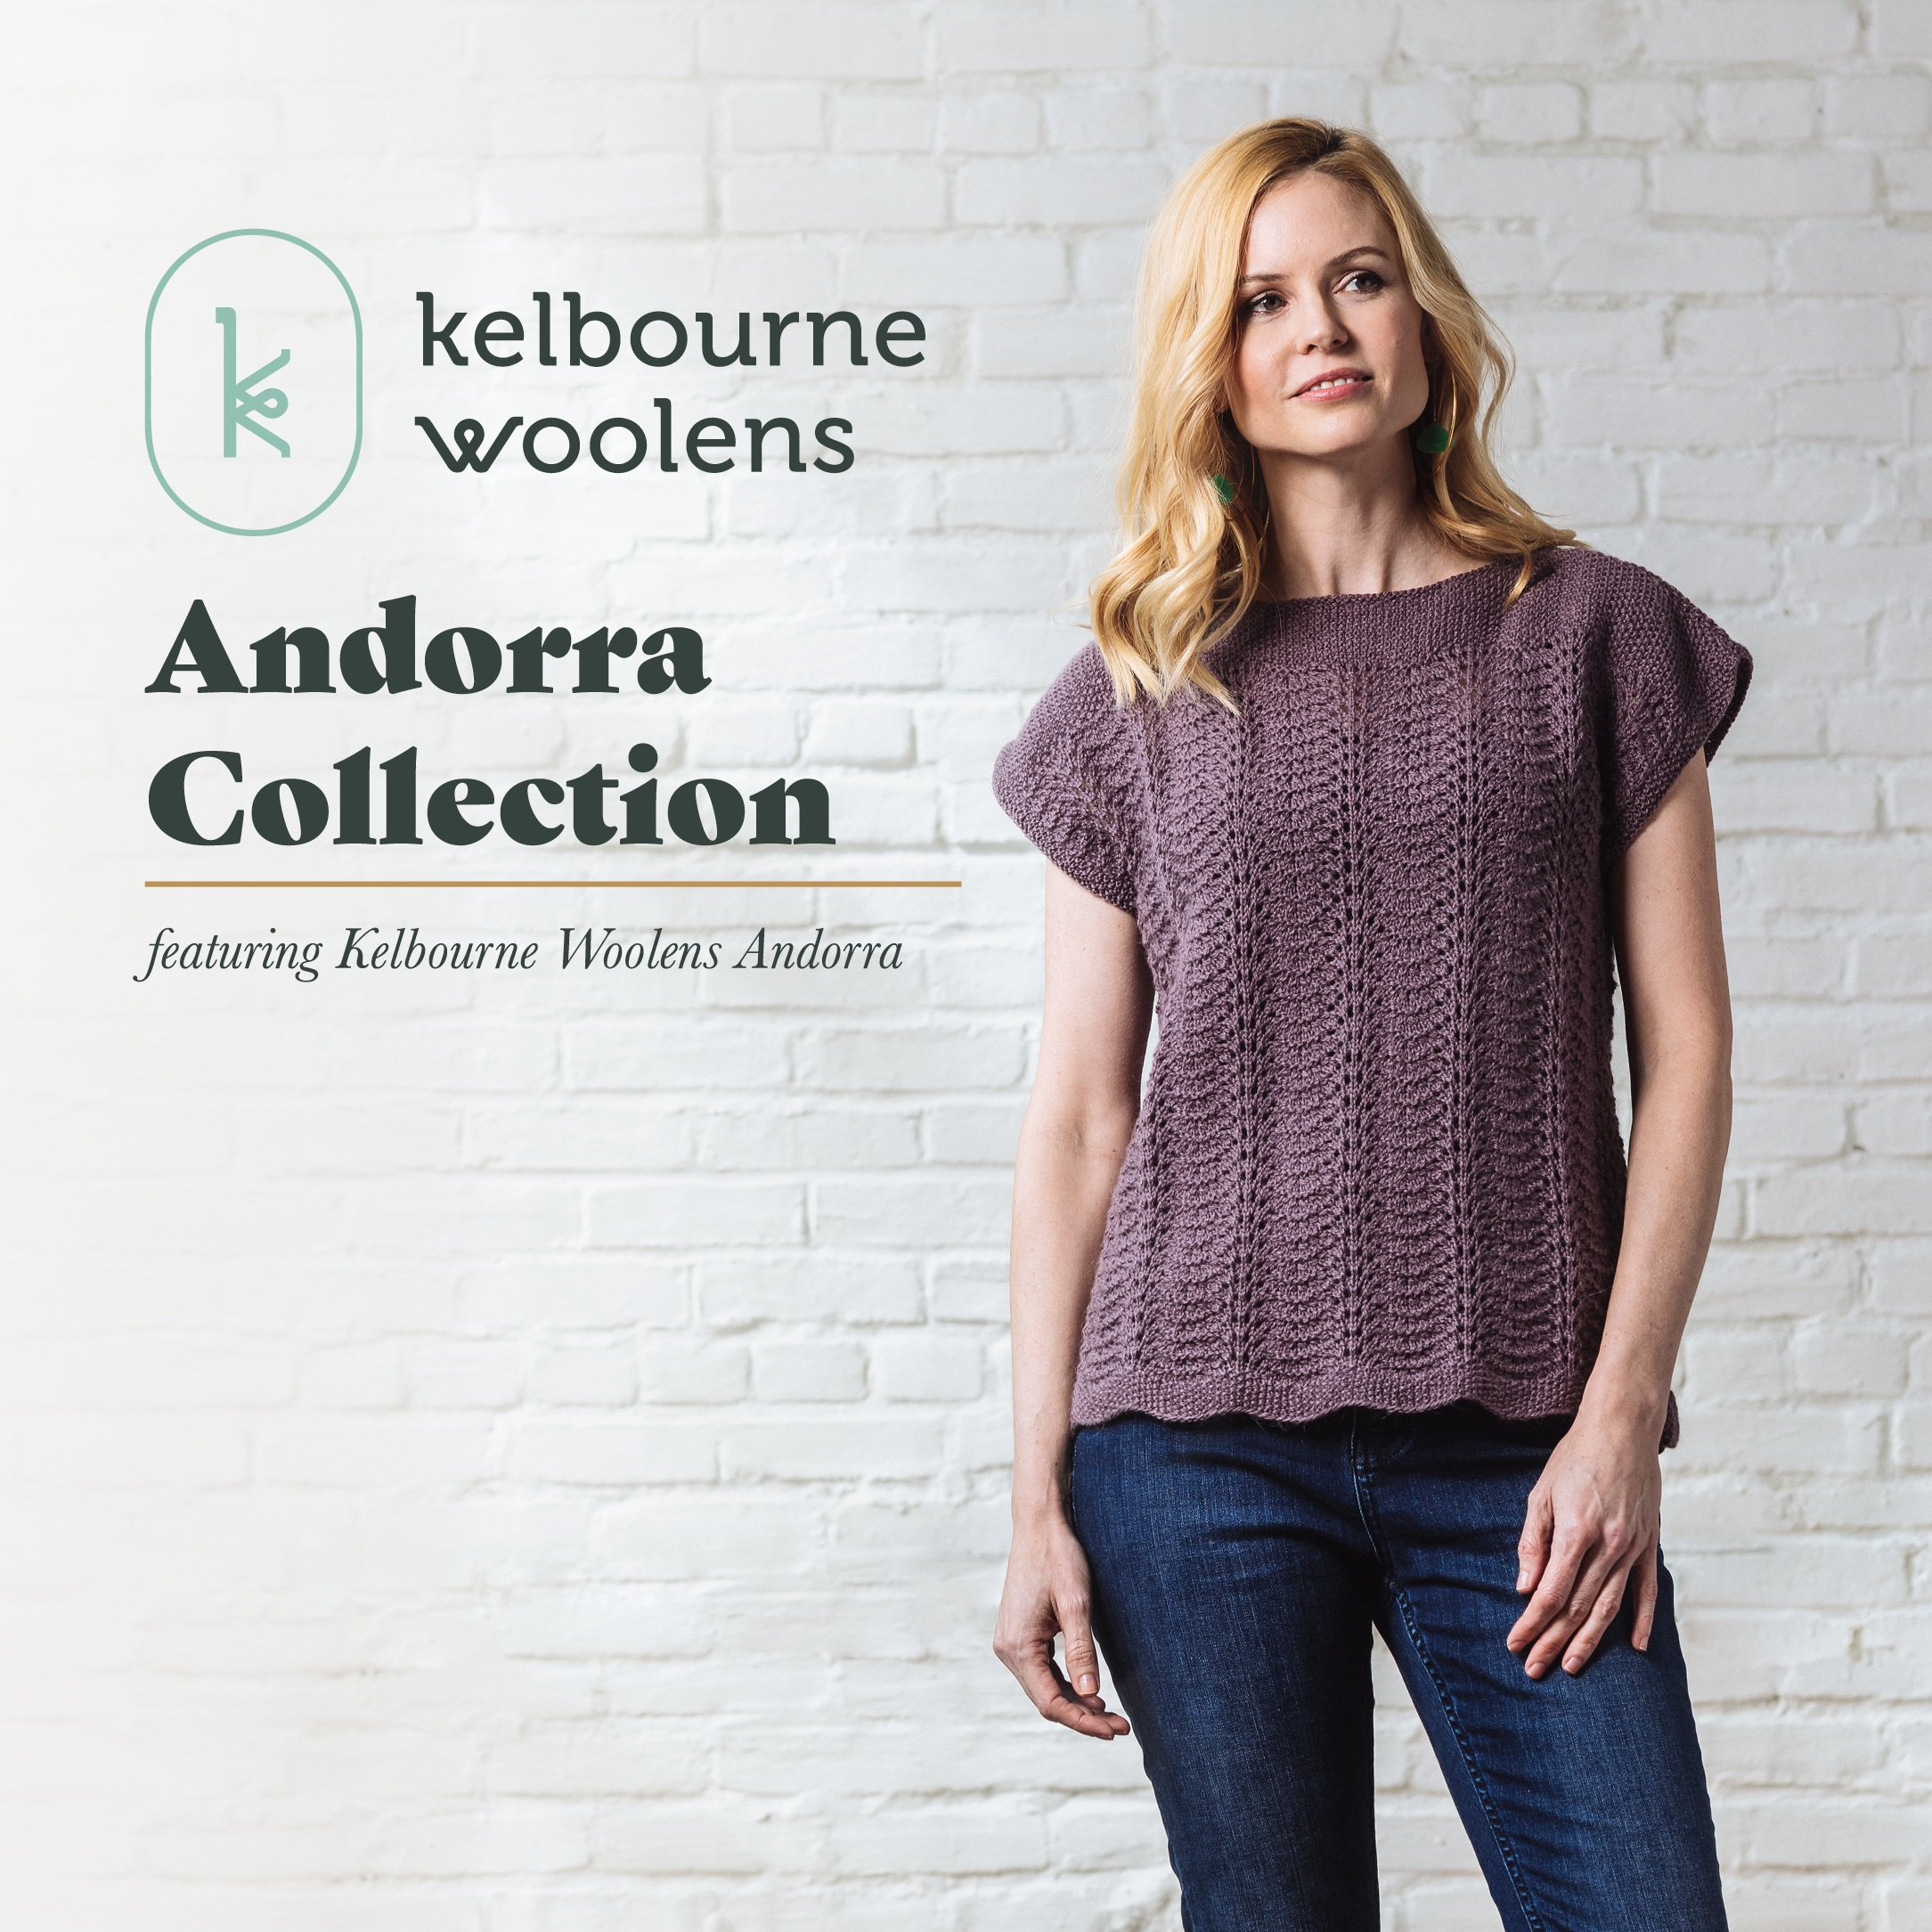 Andorra Collection Cover Image.jpg